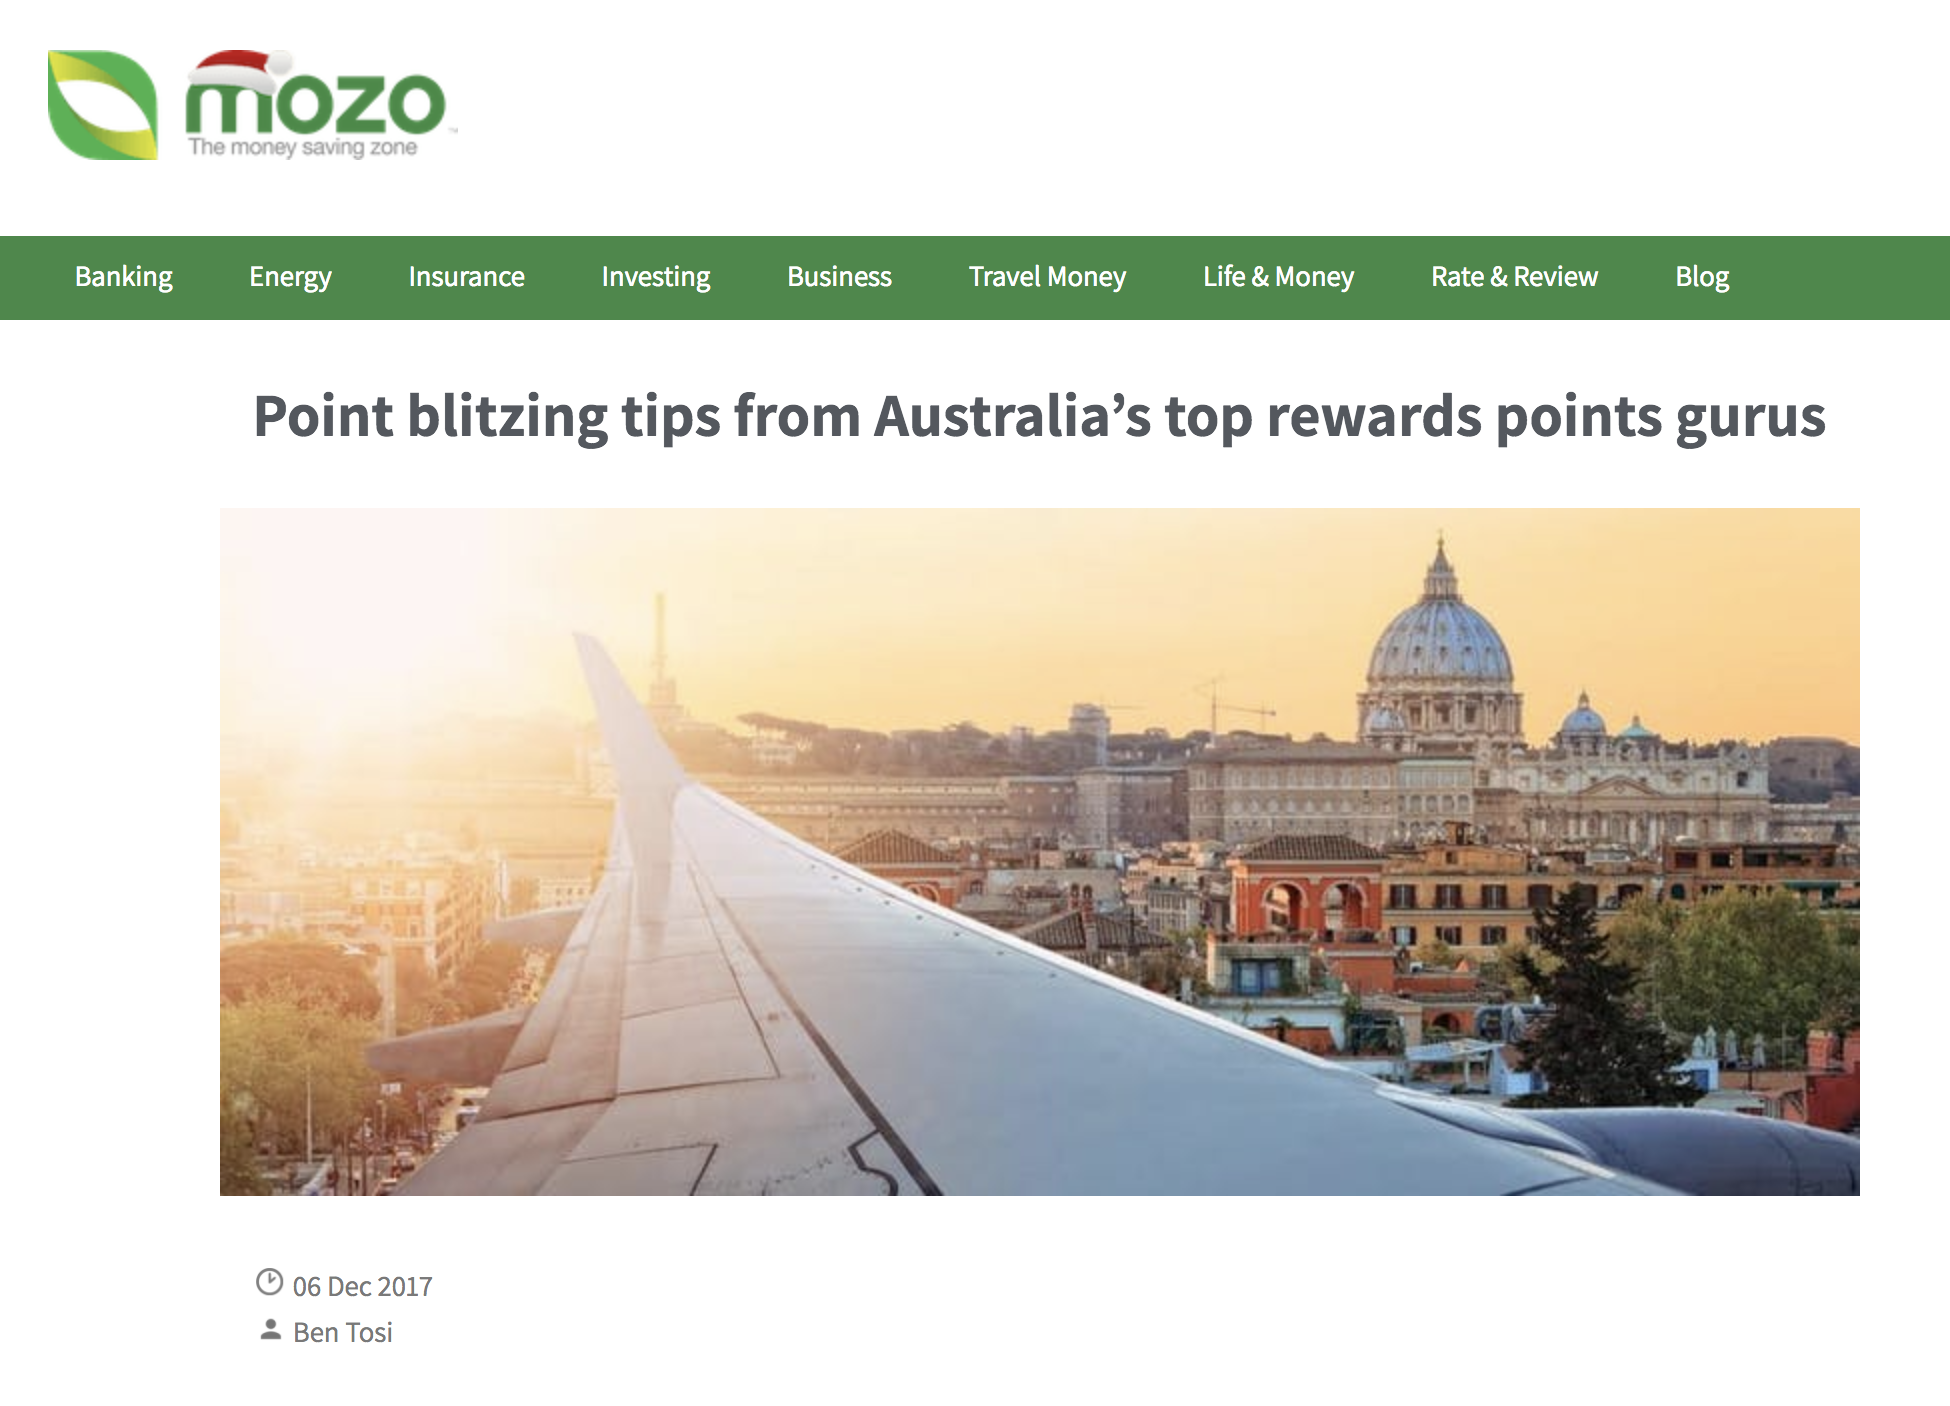 Mozo - Points Tips From Australia's Rewards Points Experts